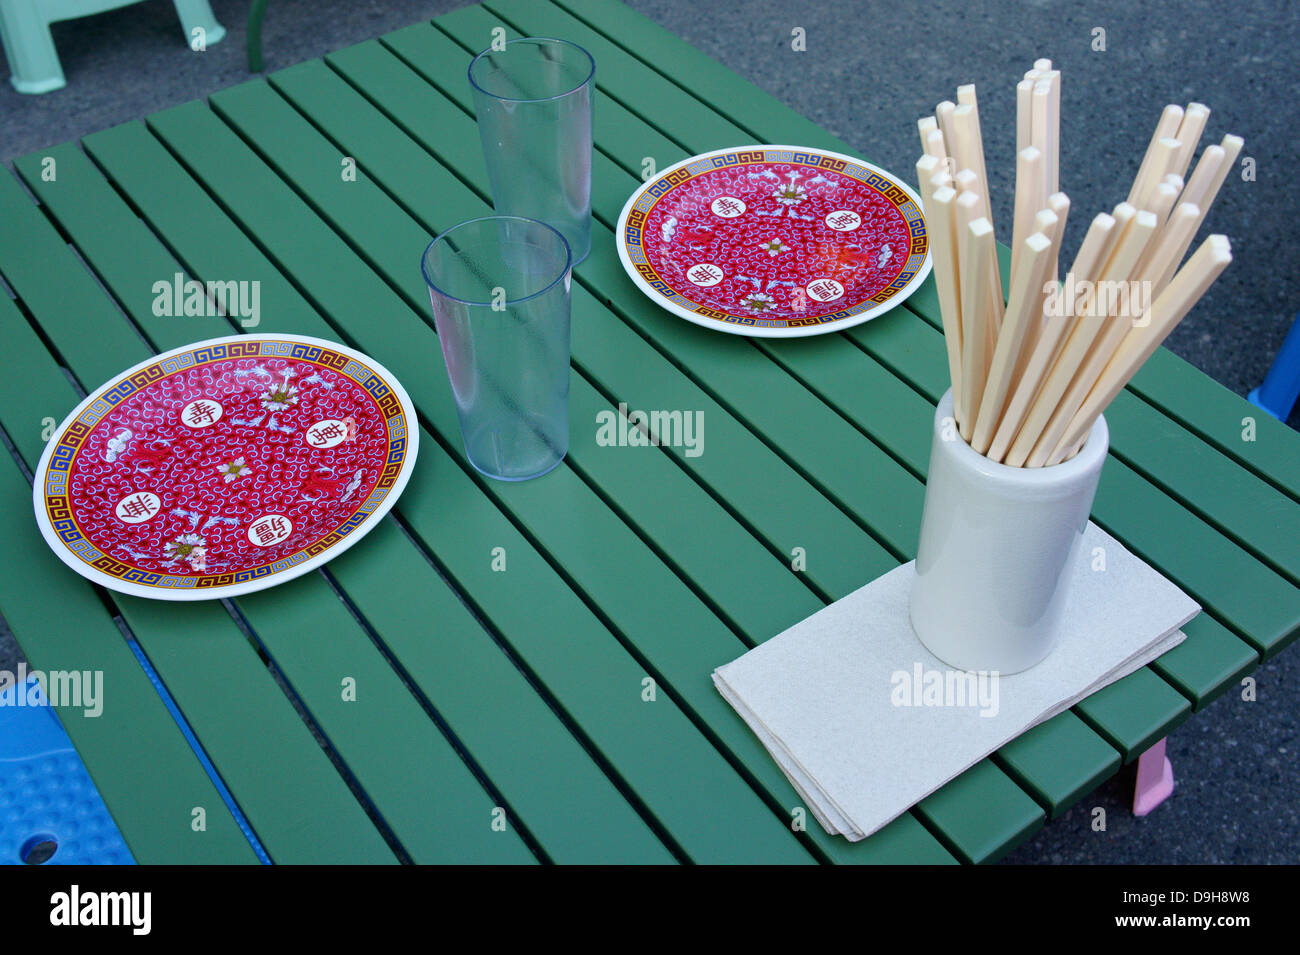 Chinese plates and chopsticks in an outdoor restaurant at the night market in Chinatown, British Columbia, Canada - Stock Image